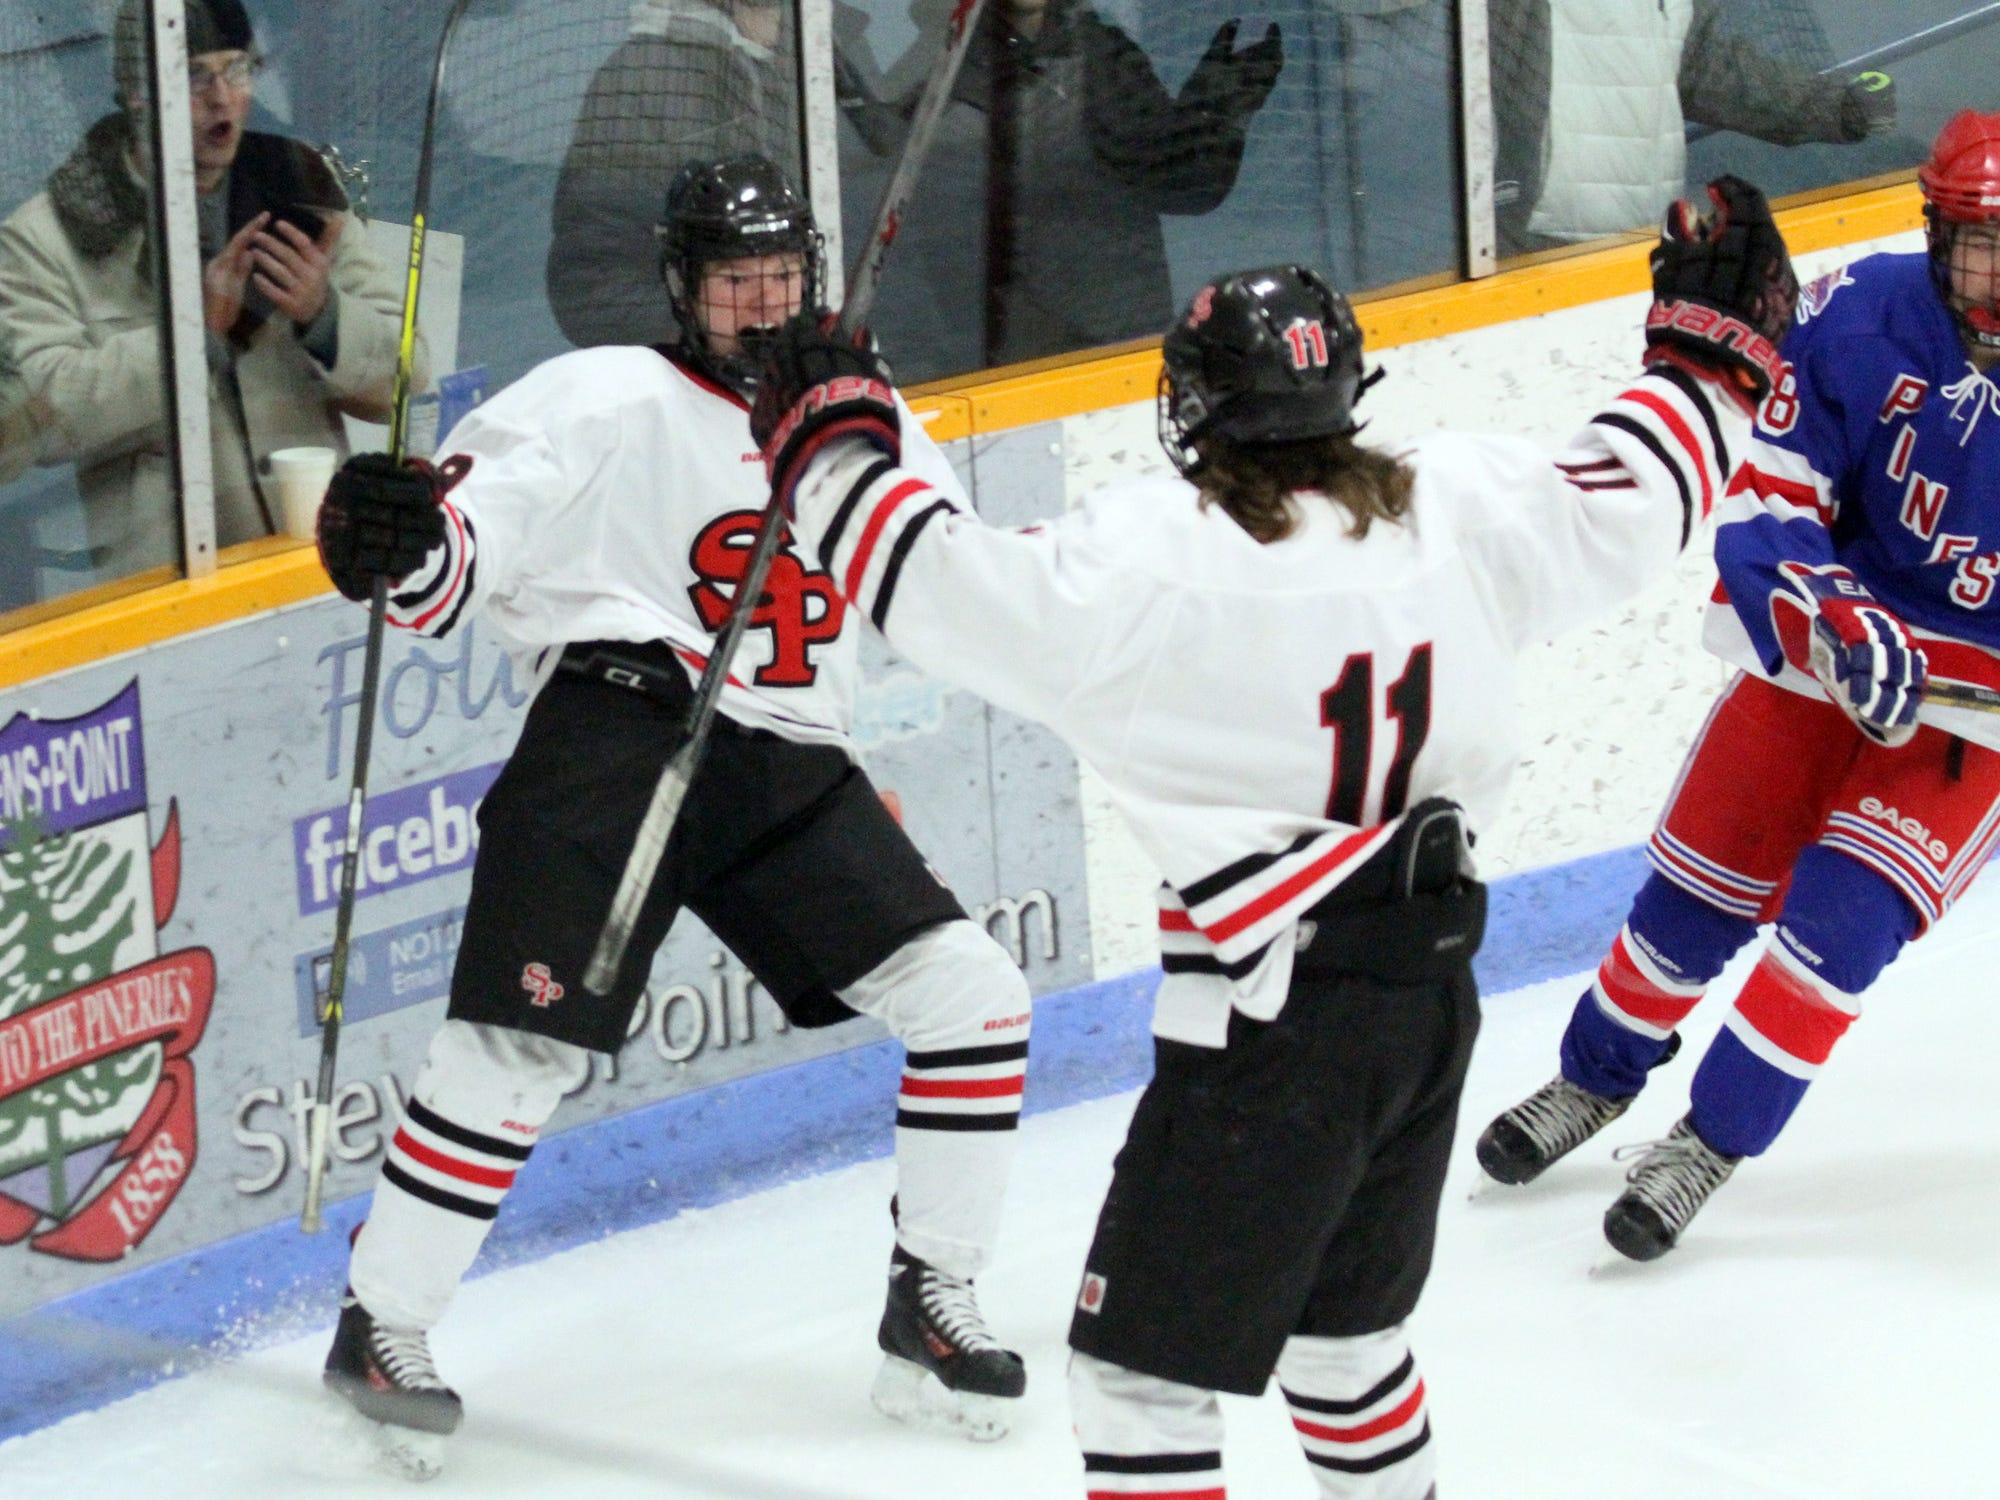 Stevens Point Area Senior High sophomore Brock Caufield, left, hopes to be celebrating a spot on the U.S. National Under-17 Team as part of USA Hockey's National Team Development Program in the next month.